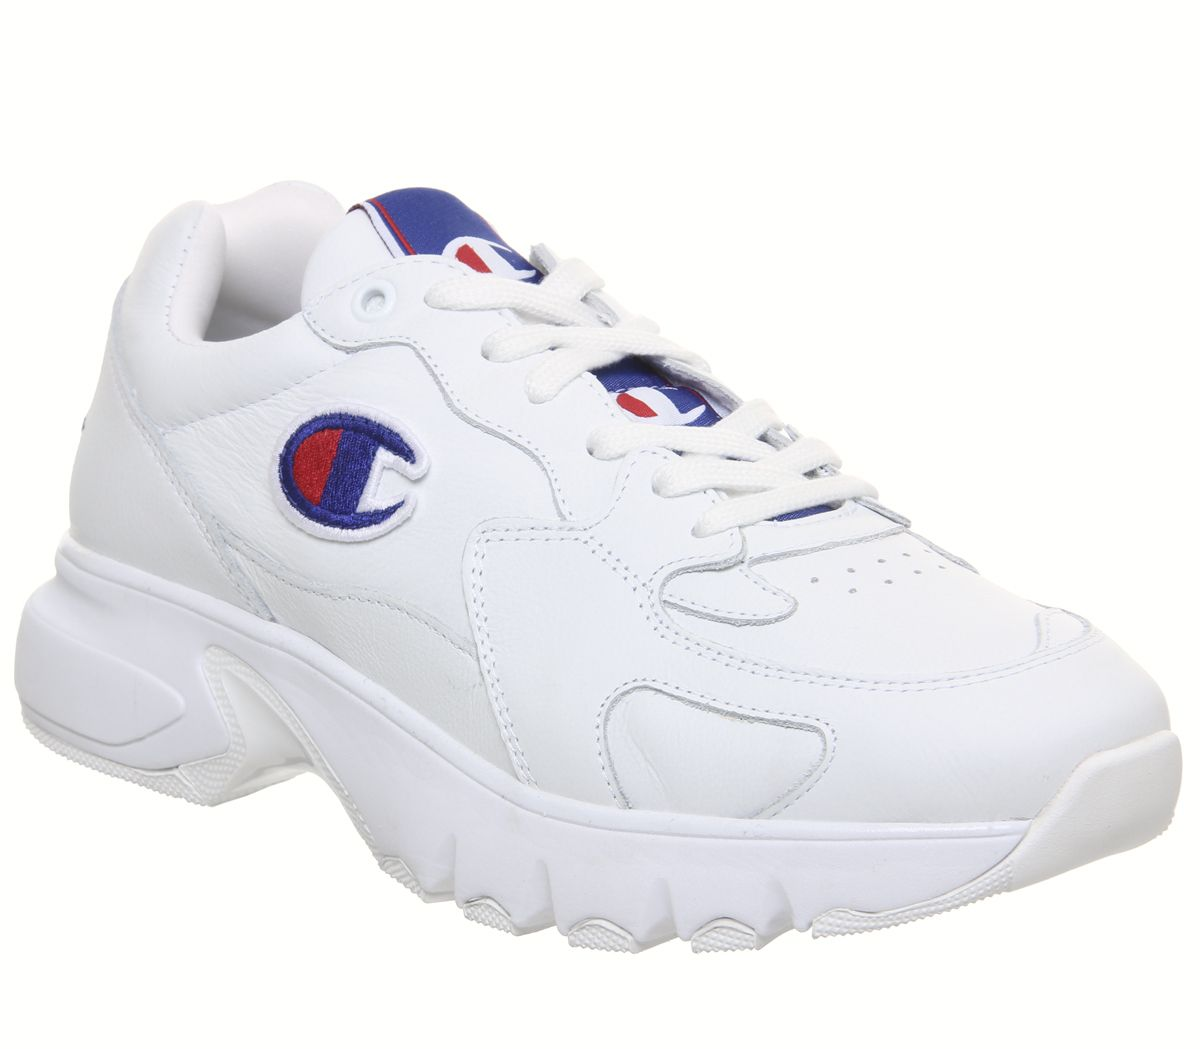 34011cb62 Champion Cwa Leather Trainers White - His trainers